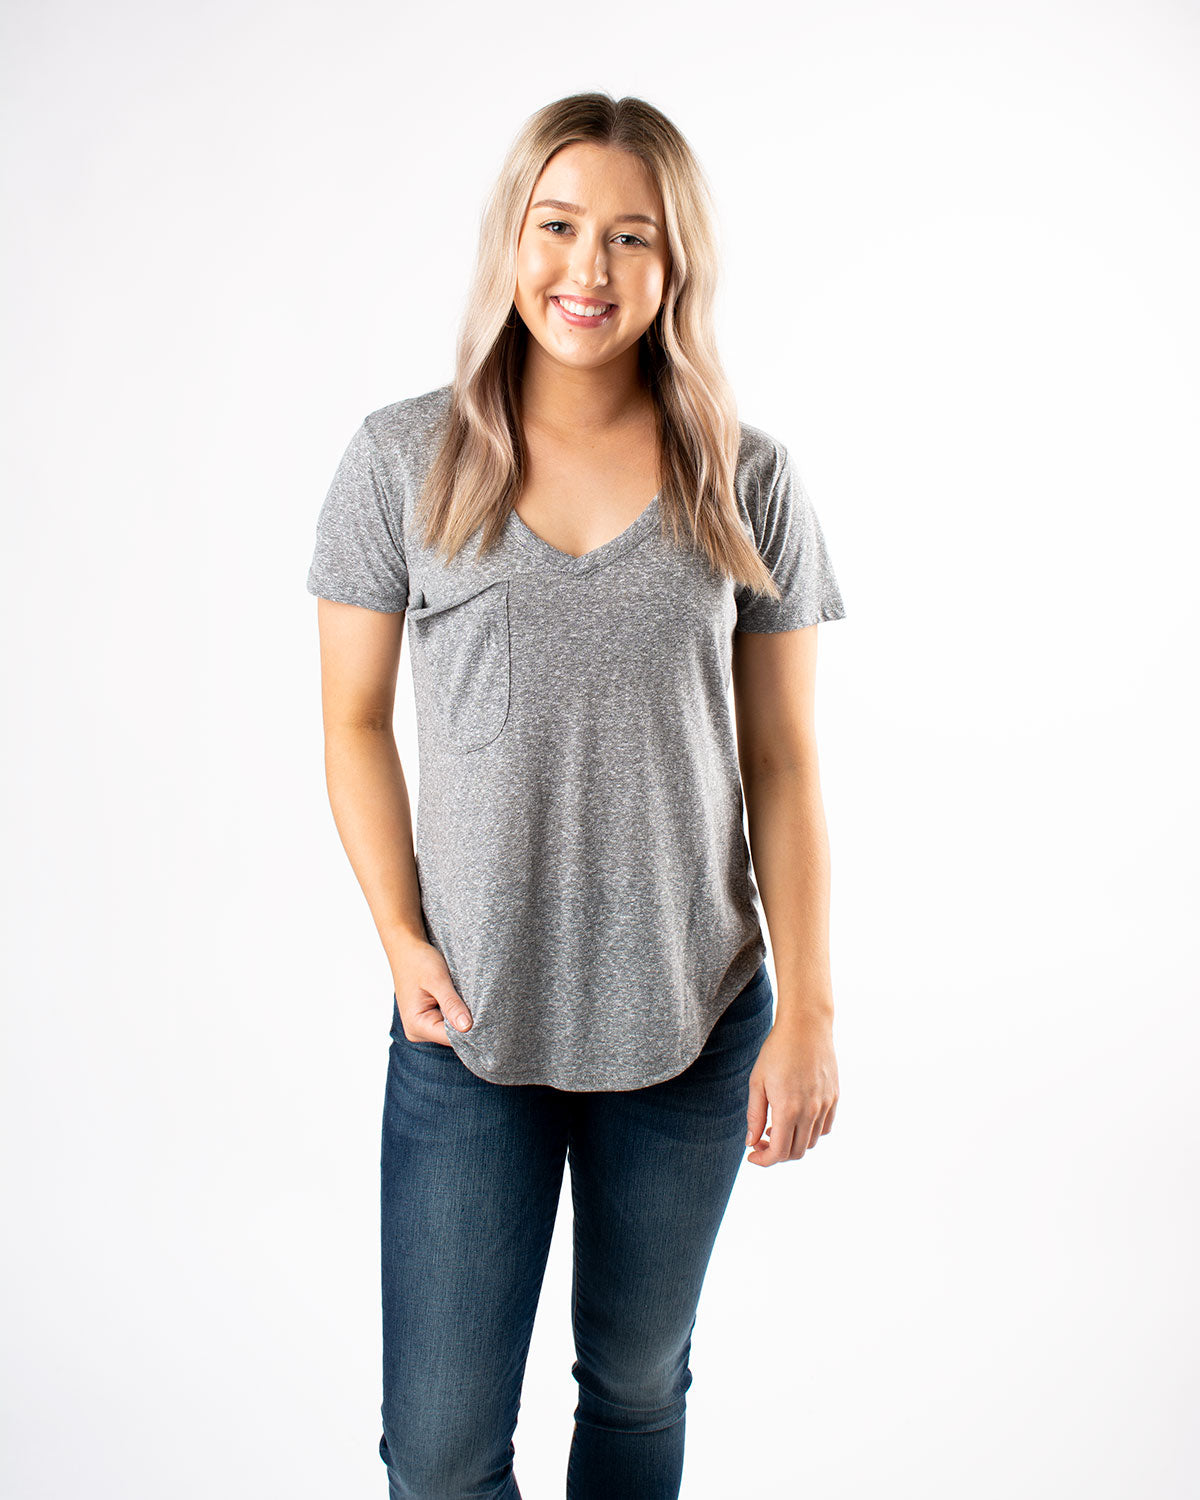 The Tri-Blend Pocket Tee